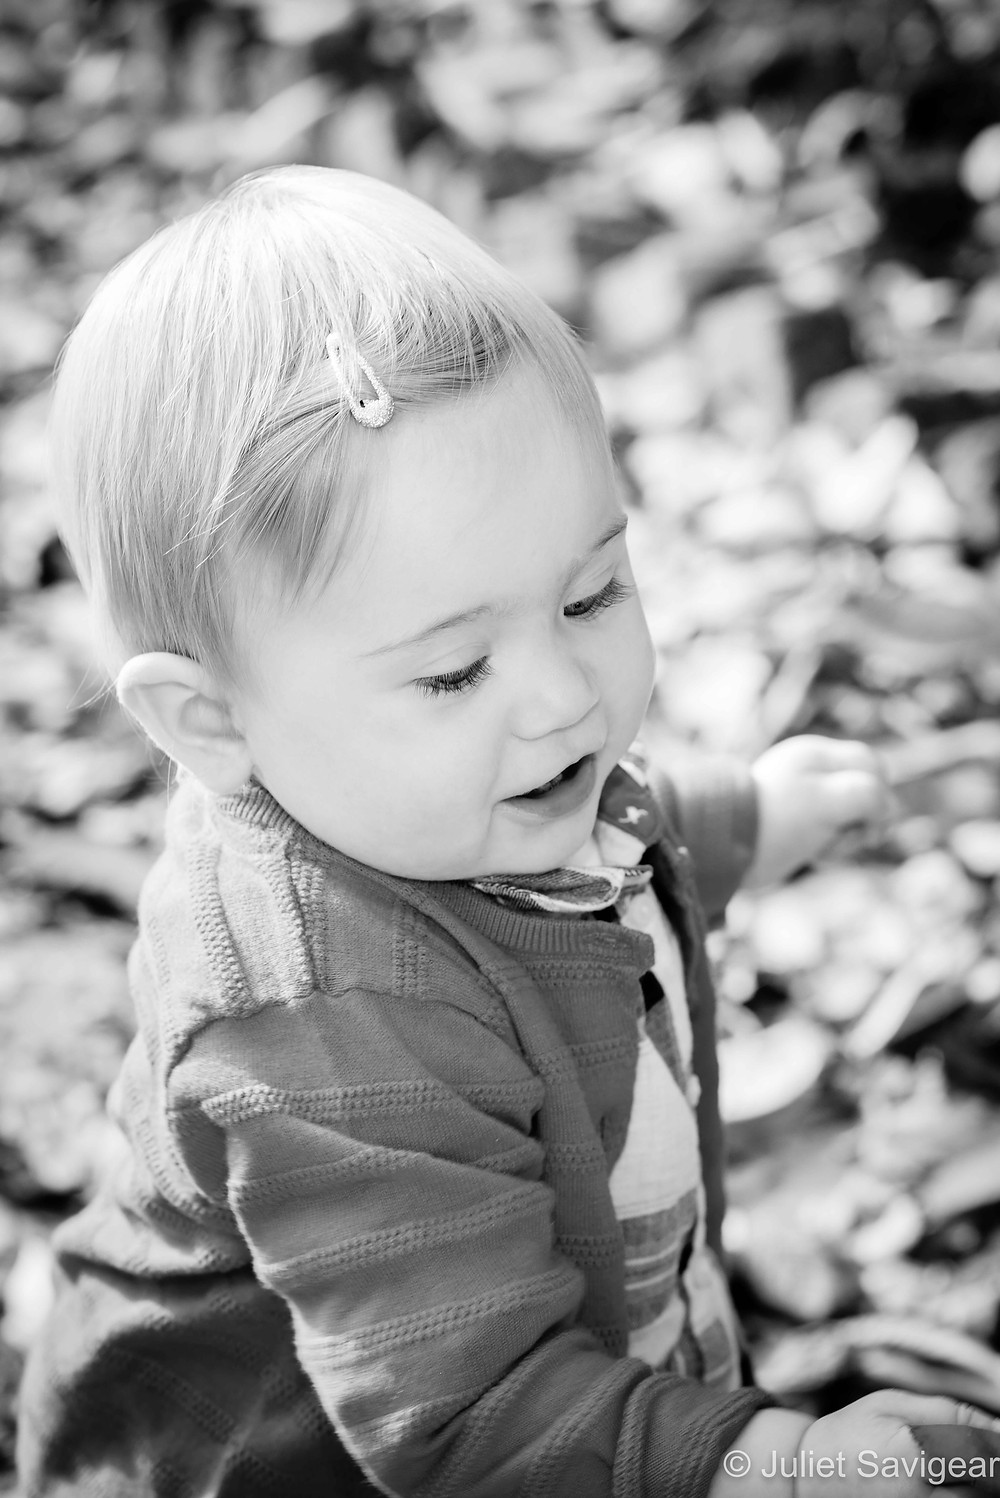 Toddler and leaves